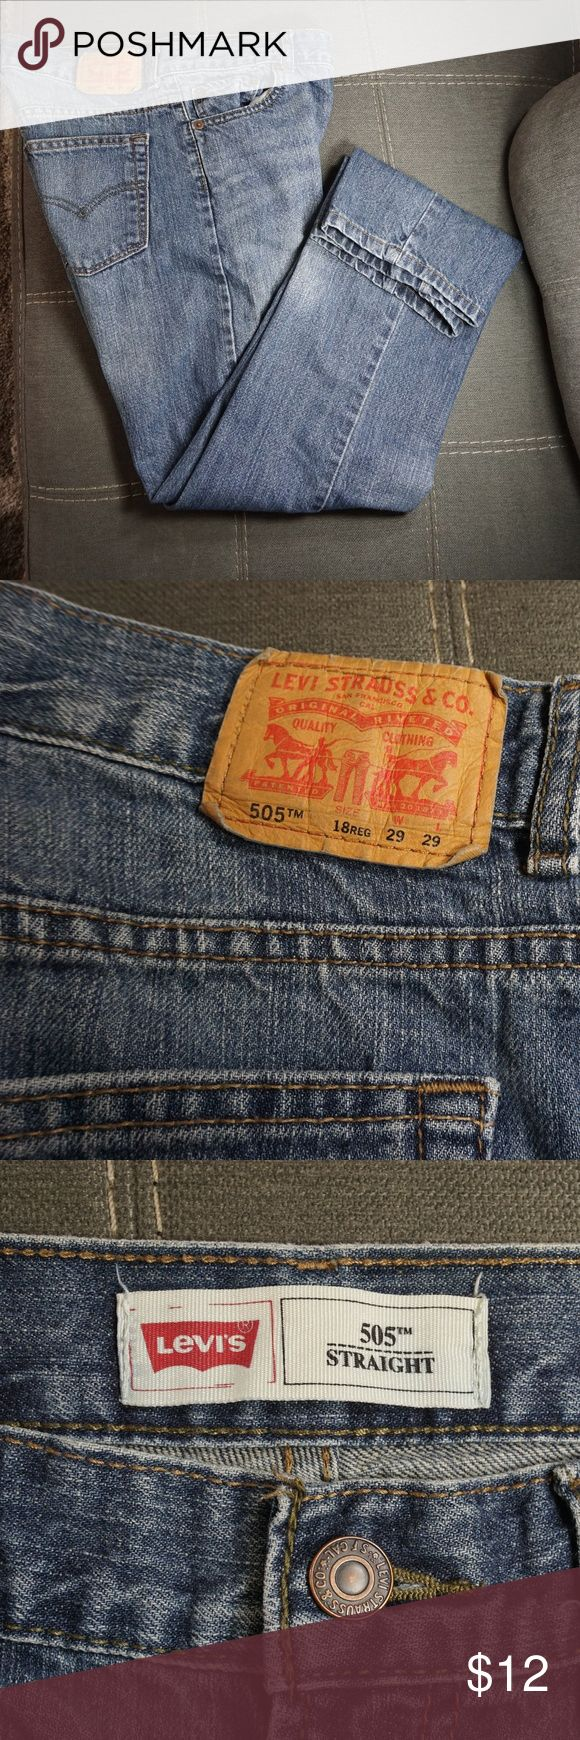 Levis 505 Straight Cut Jeans (Boys) Levis Straight Cut Jeans in Good Condition. Size 18 Regular. See Pictures for measurements. Levi's Bottoms Jeans